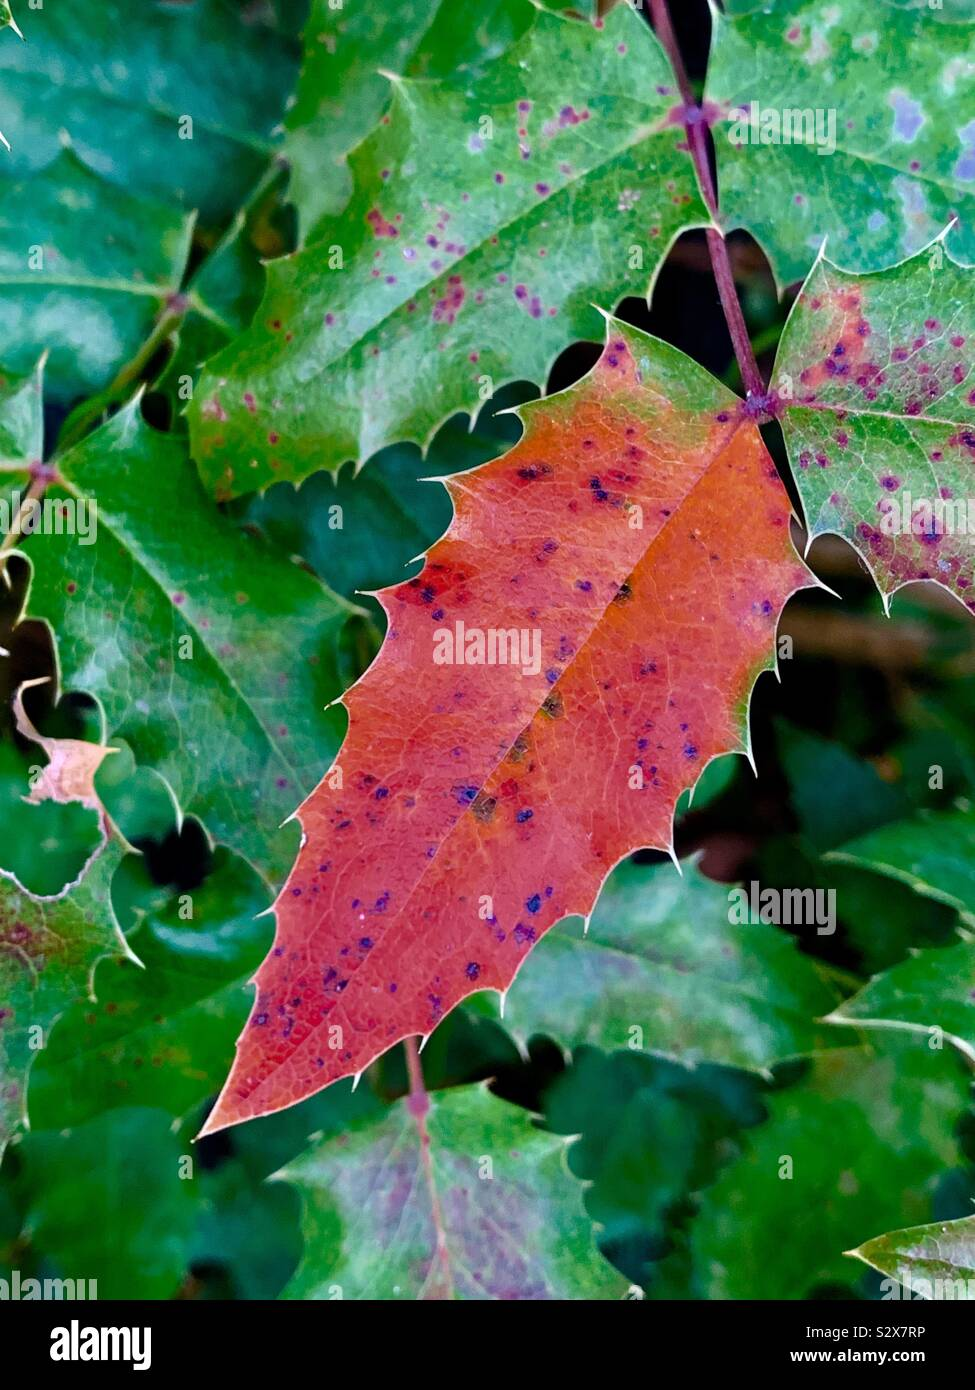 Keeping your identity among similar. Red leaf among green leaves Stock Photo